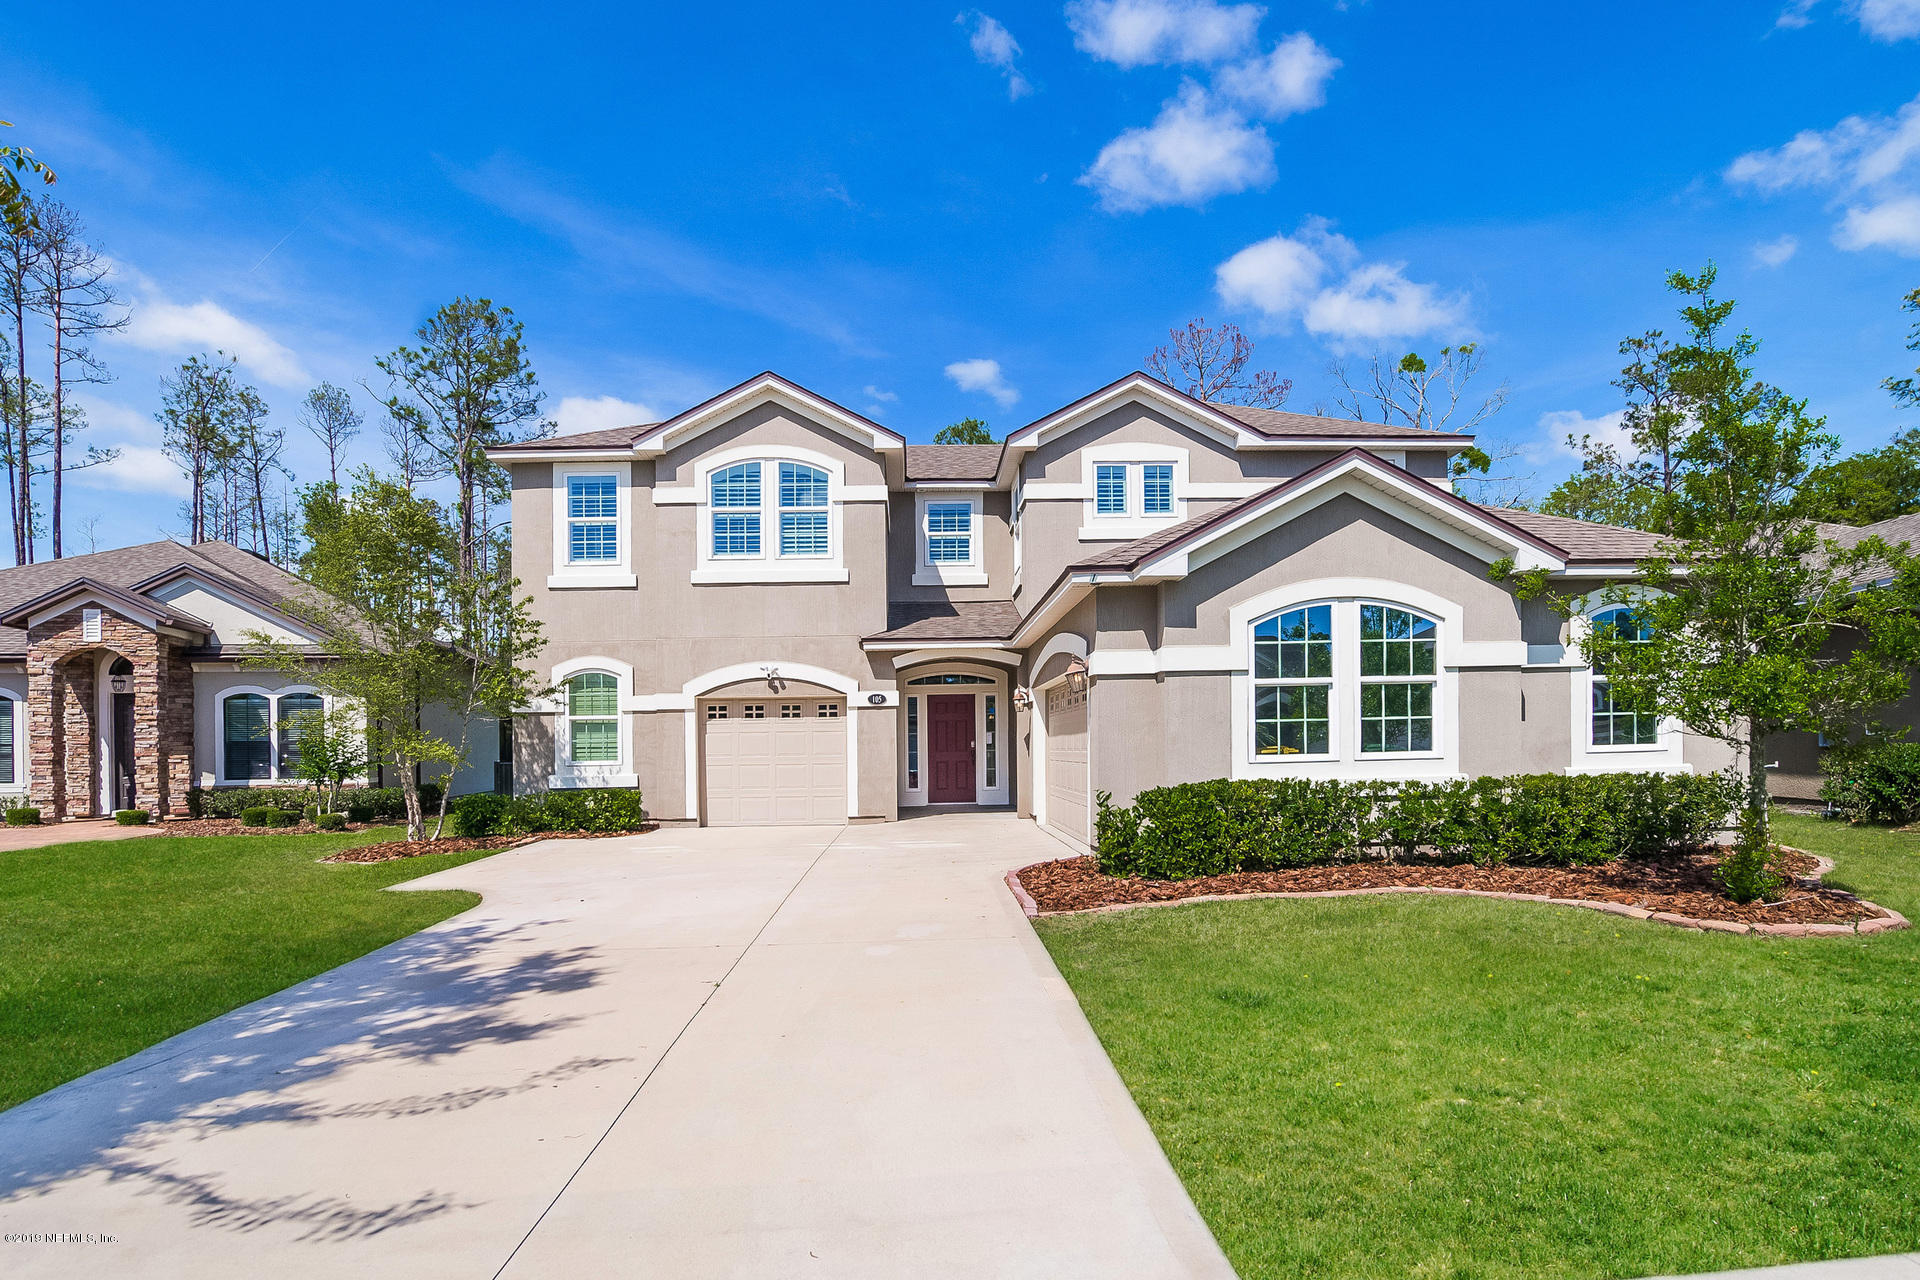 105 STONY FORD, JACKSONVILLE, FLORIDA 32081, 4 Bedrooms Bedrooms, ,3 BathroomsBathrooms,Residential - single family,For sale,STONY FORD,992706